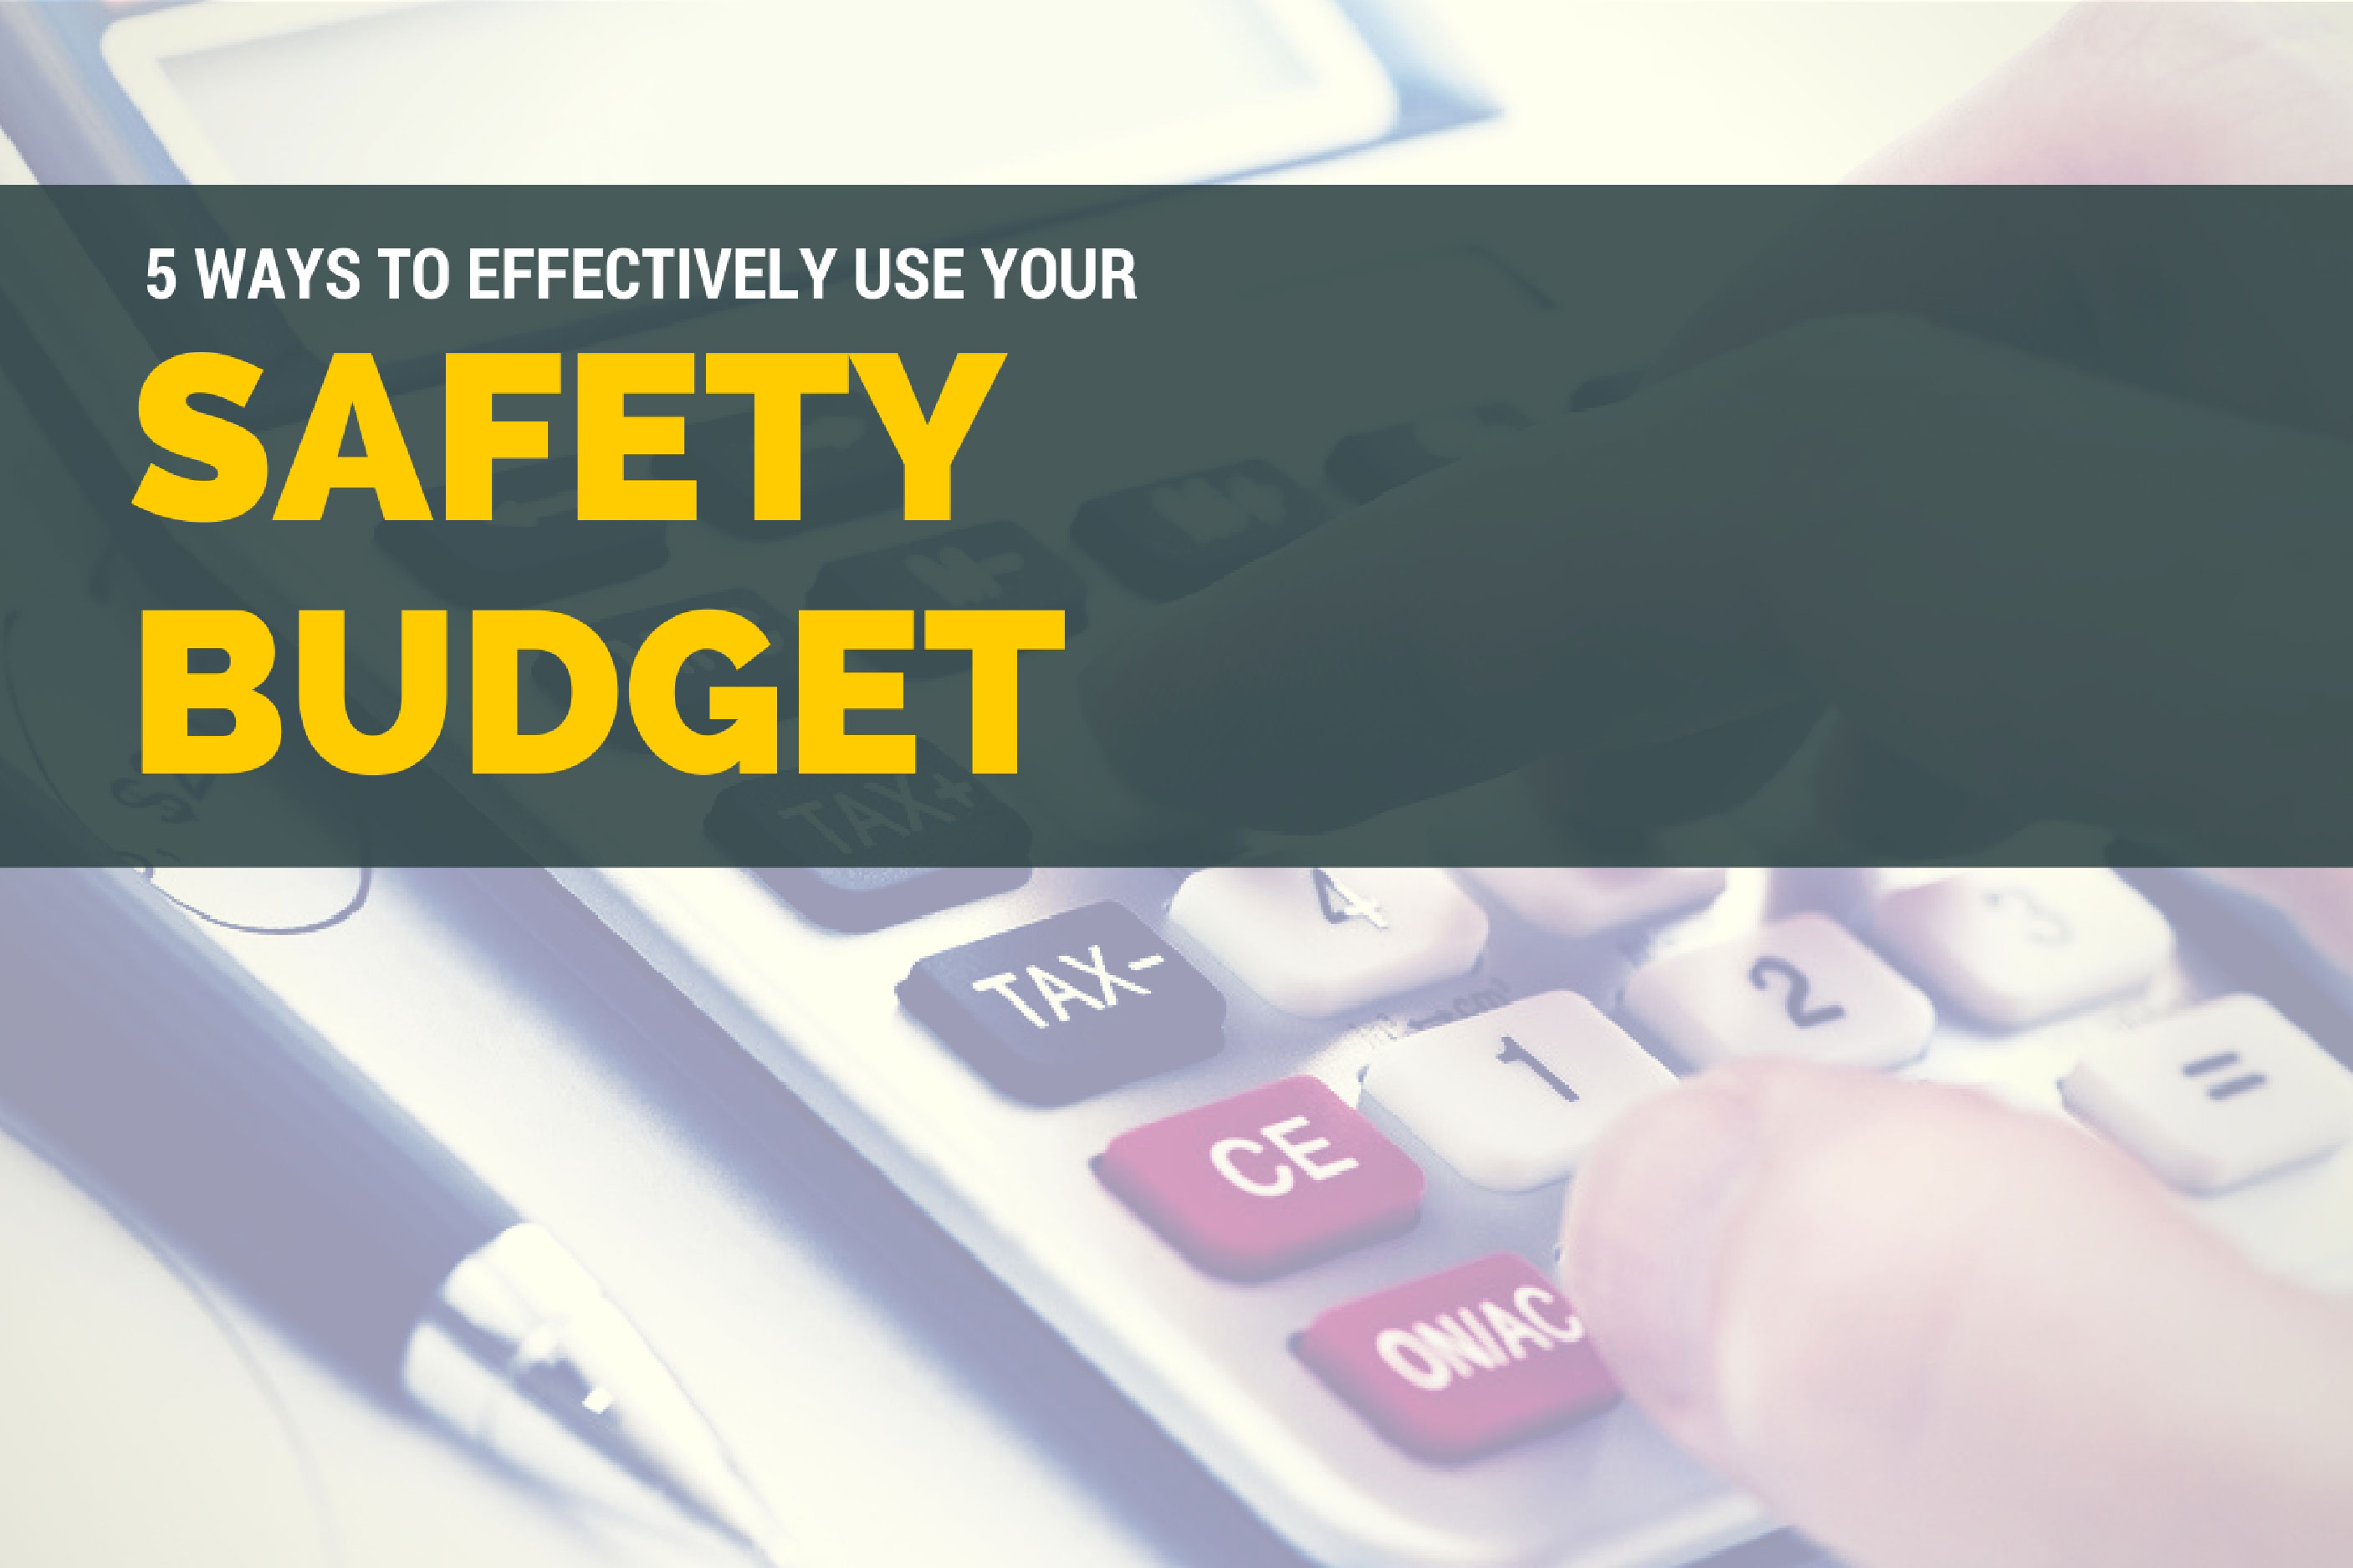 5 Ways to Effectively Use Your Safety Budget